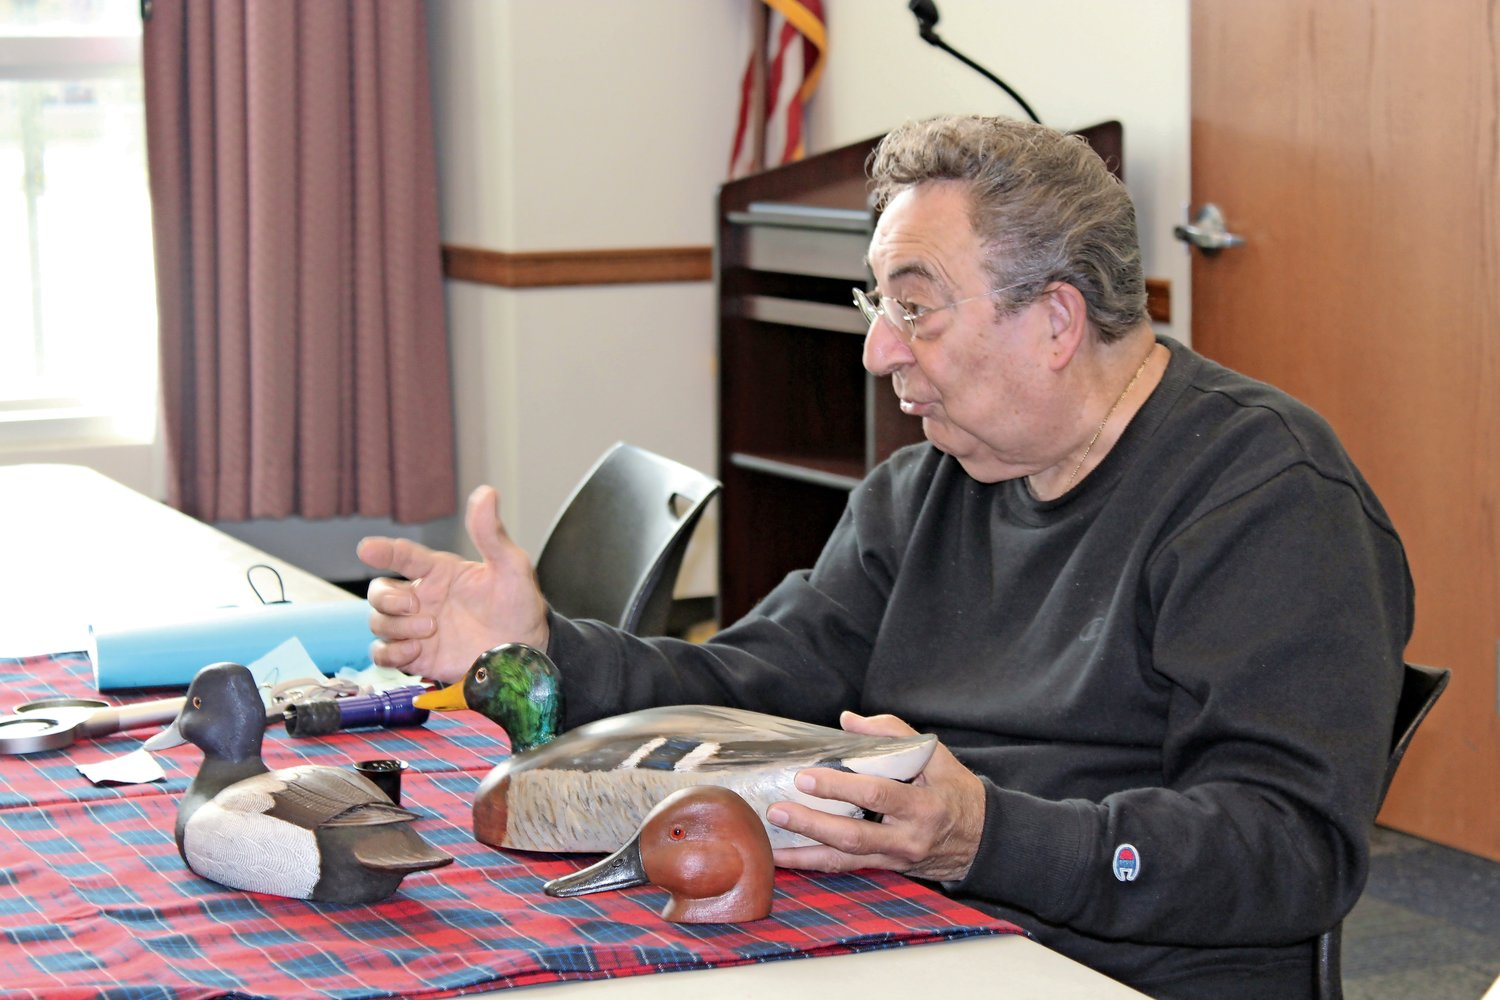 Eddie Costello Sr. appraised wooden ducks at the Elmont Memorial Library on Oct. 26.